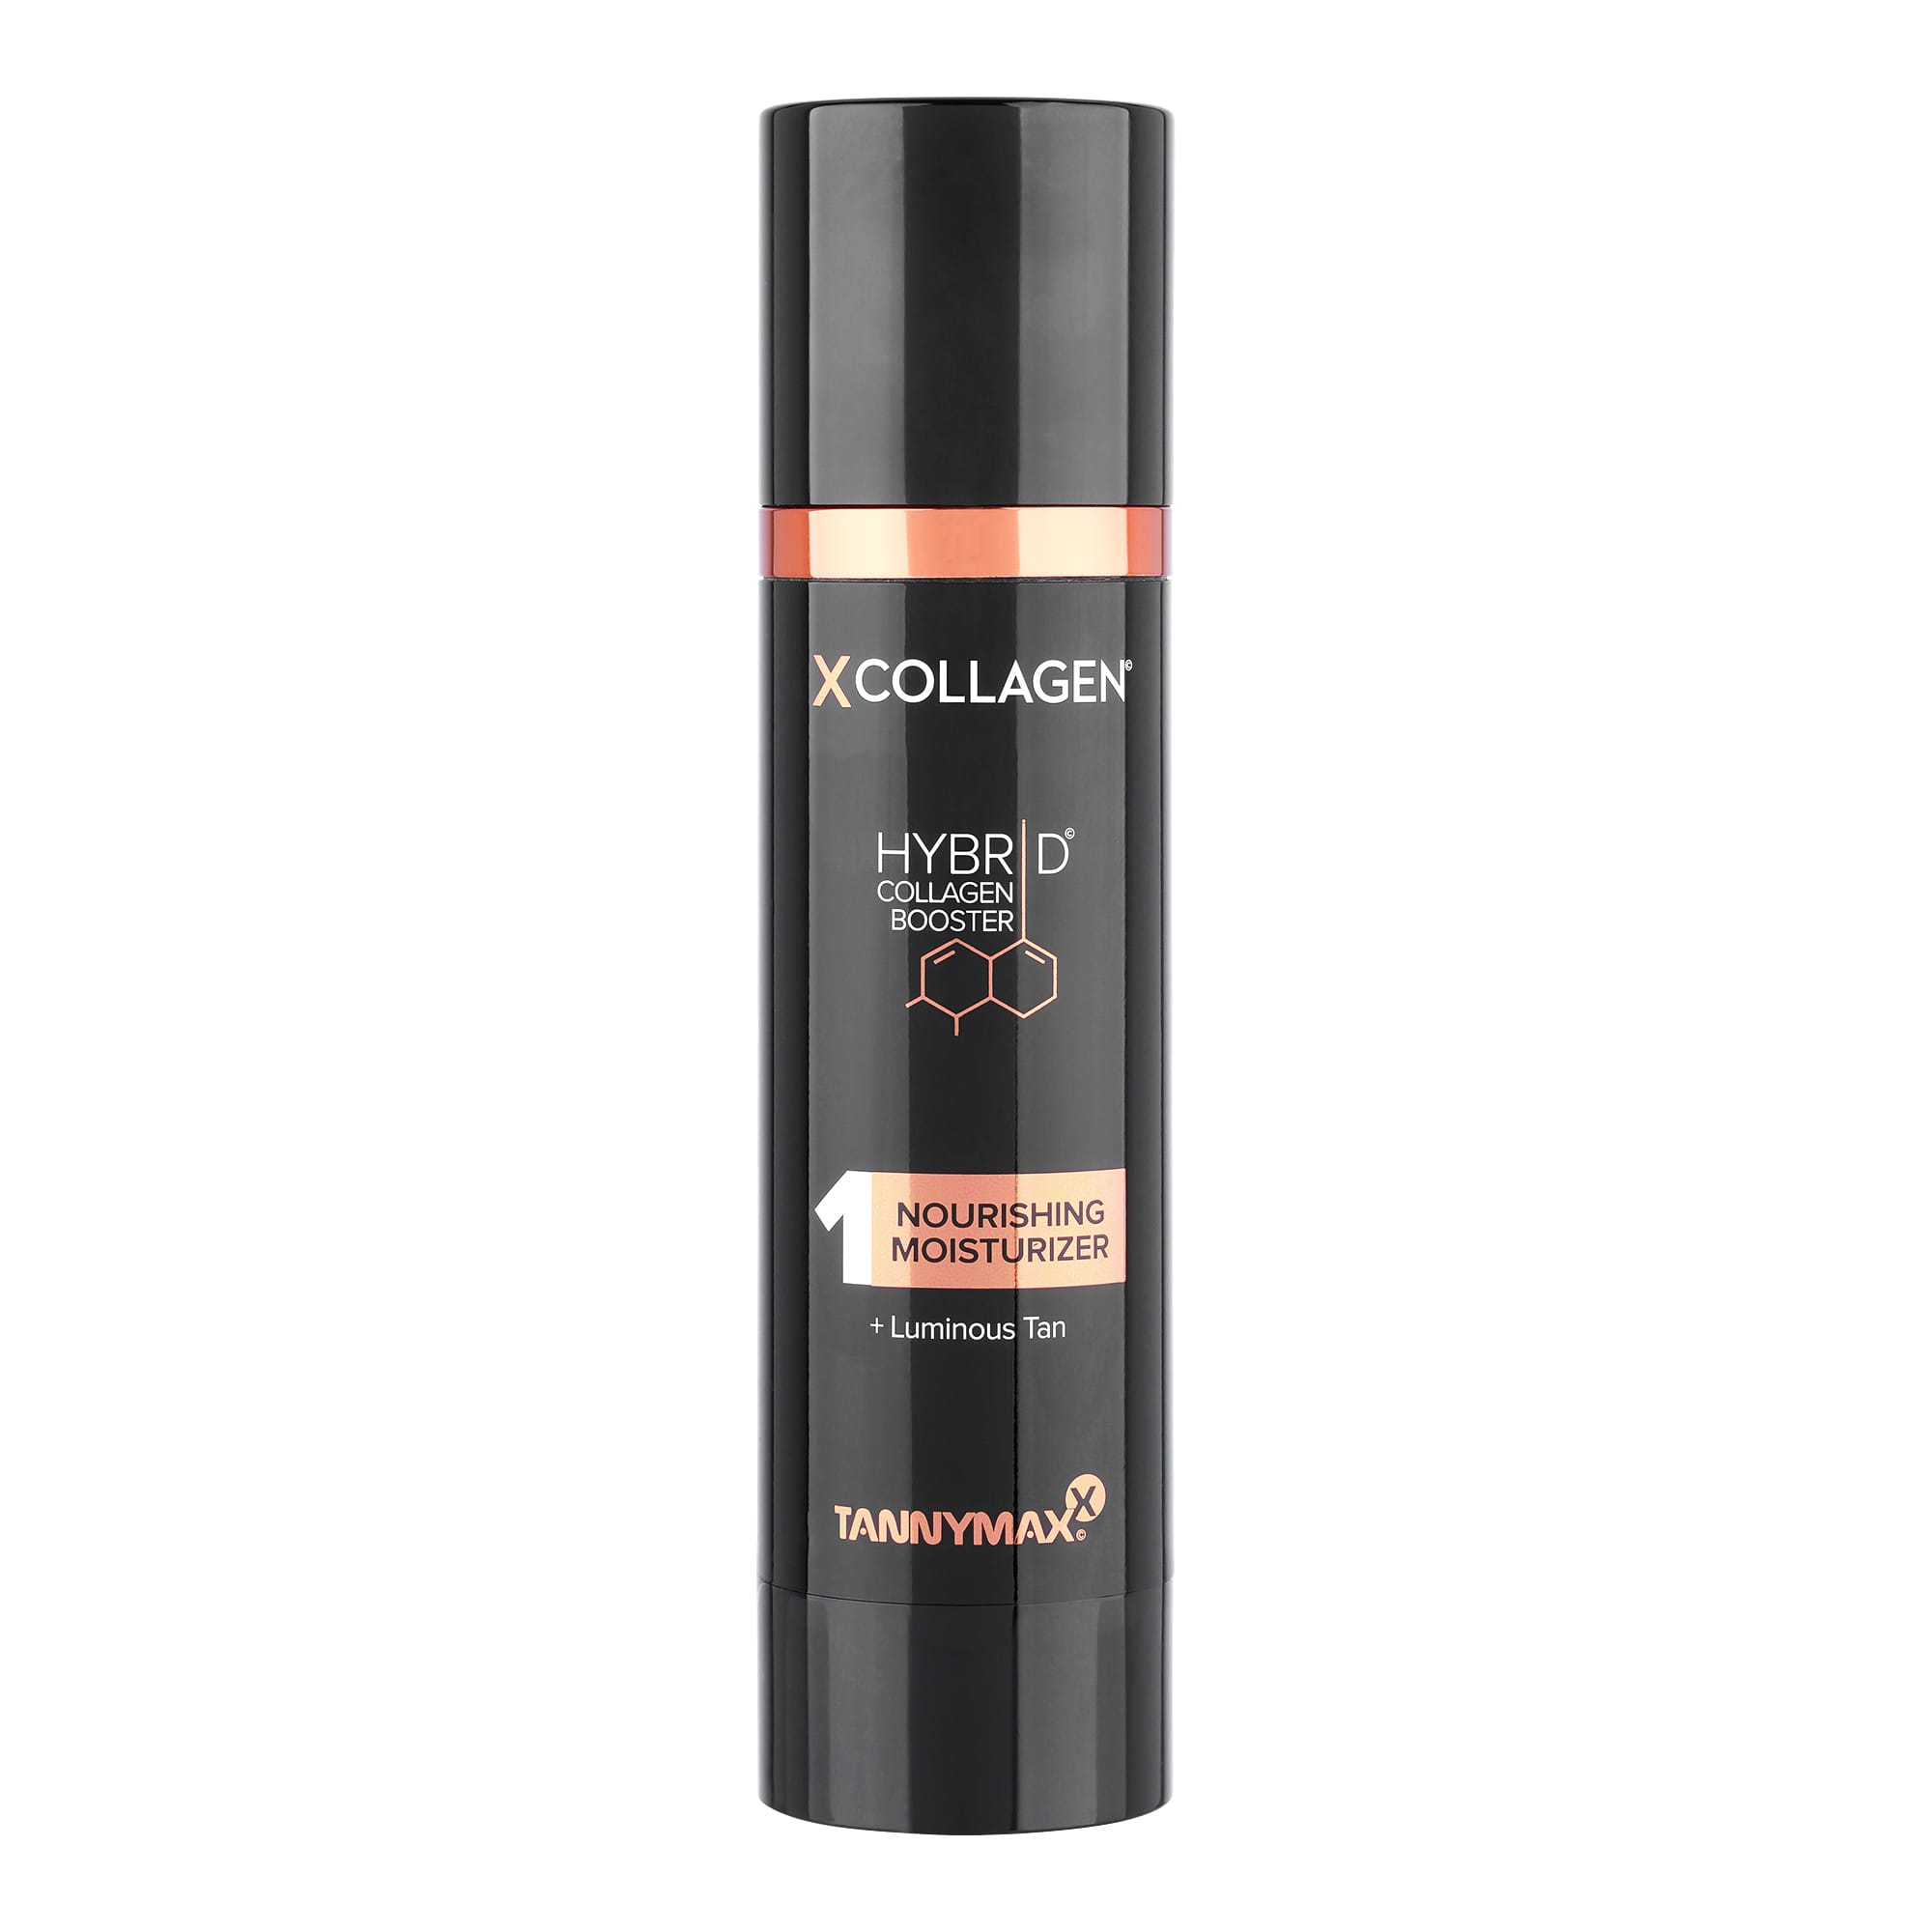 XCollagen 1 Nourishing Moisturizer + Luminous Tan